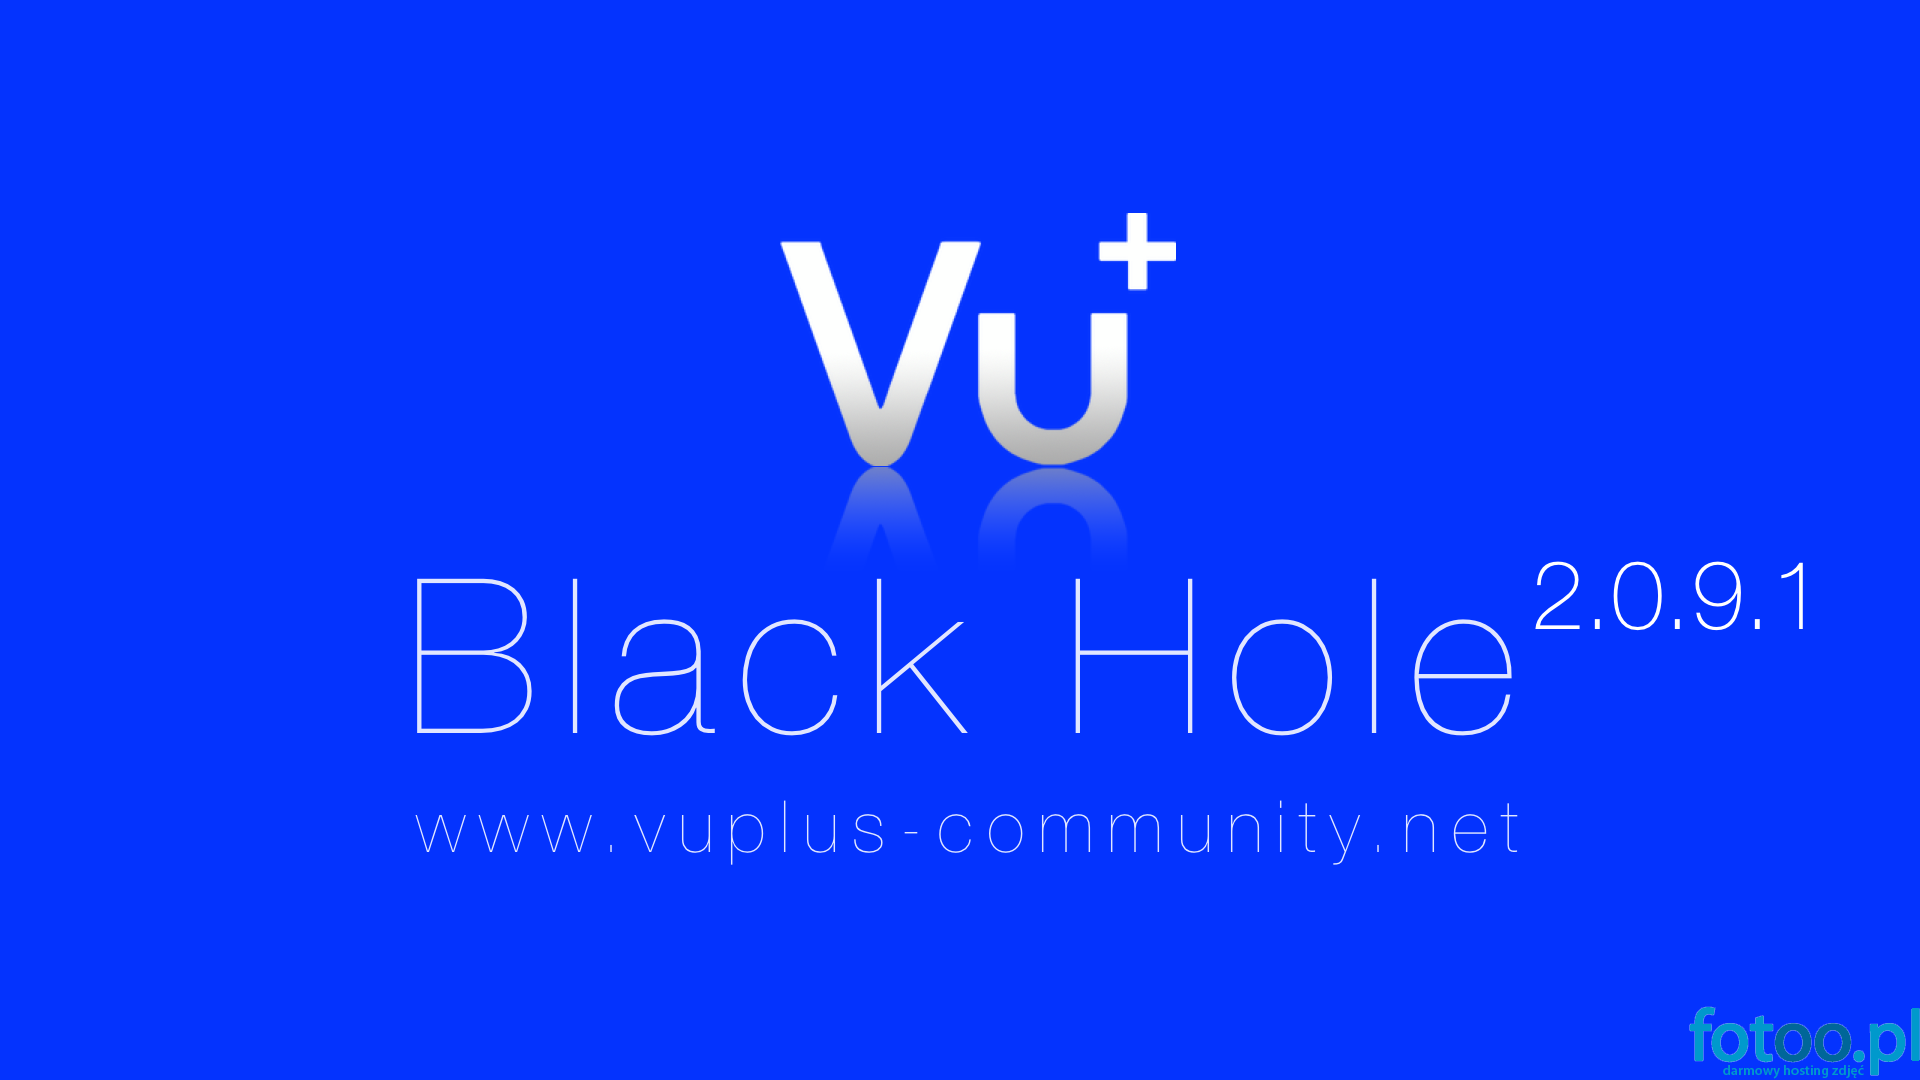 Download Black Hole 2.0.9.1 for VU Duo